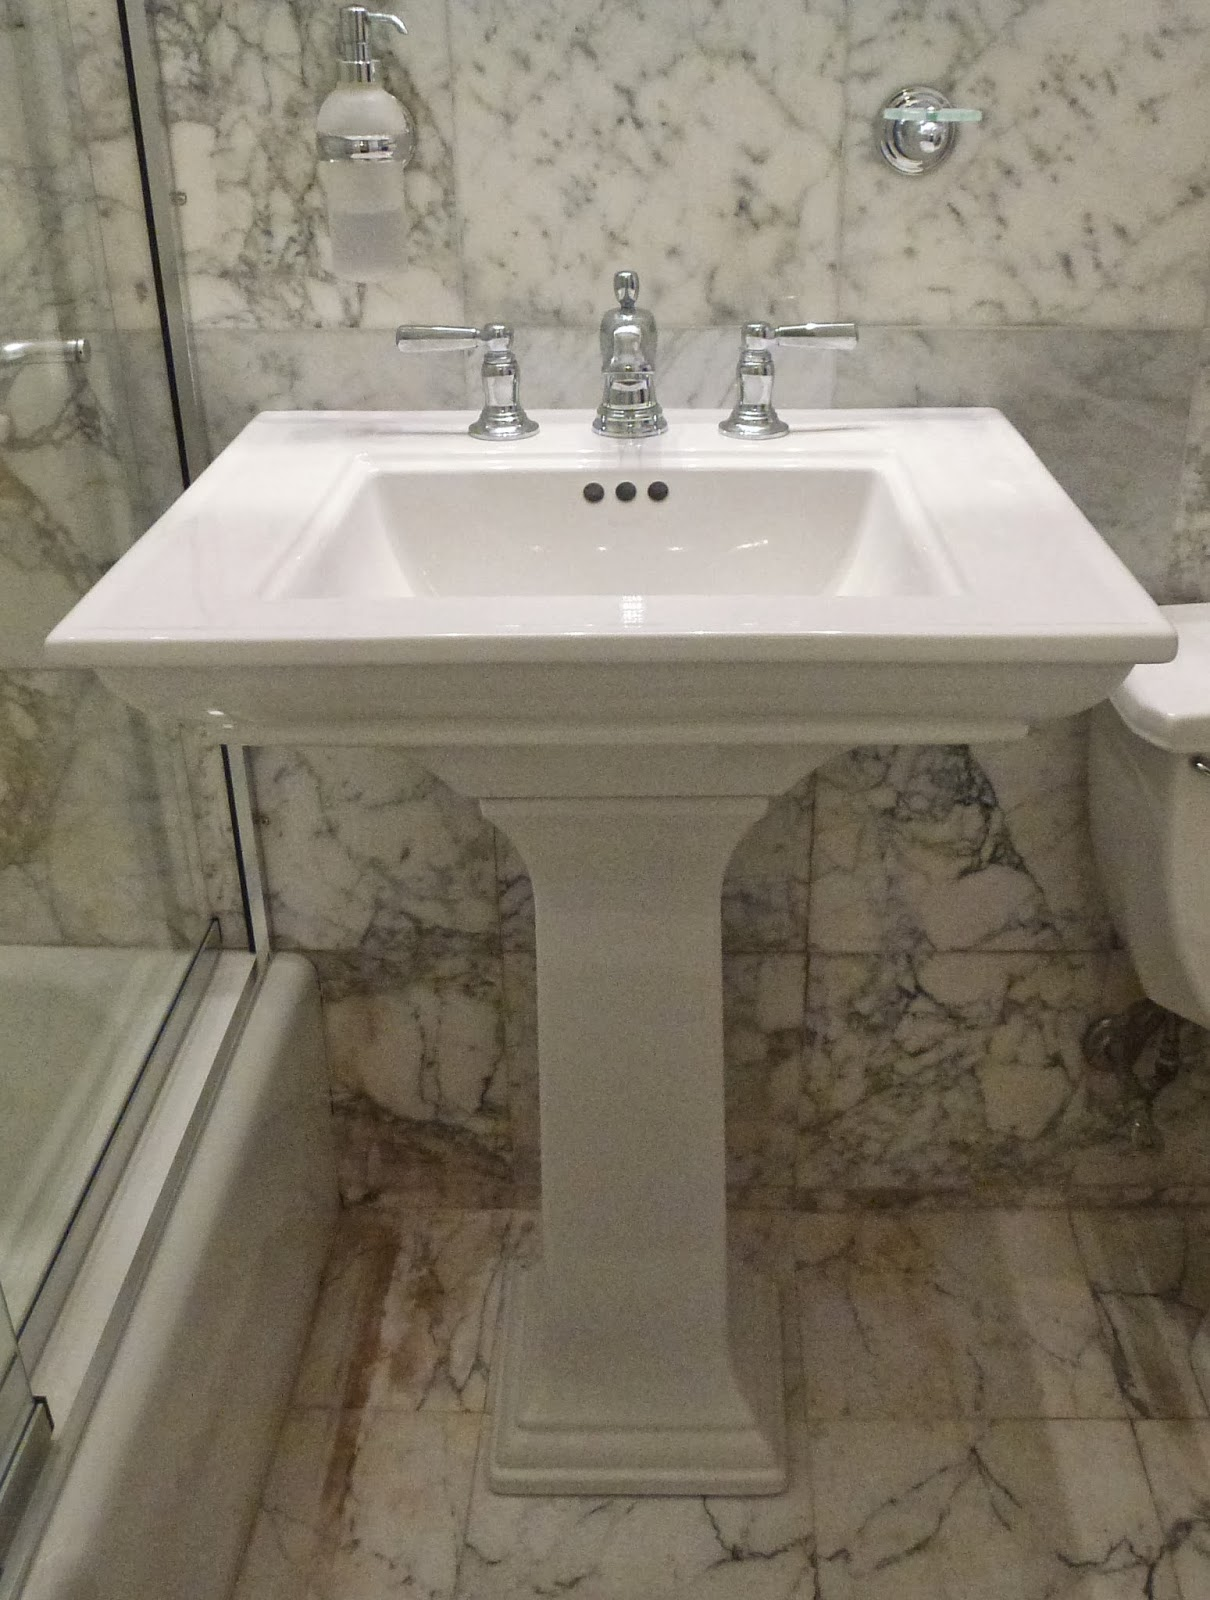 I Chose A New Pedestal Sink From Kohler. Itu0027s So Much Cleaner Looking. I  Also Like Its Simple Lines, And The Separated Hardware As Opposed To The  One Piece ...